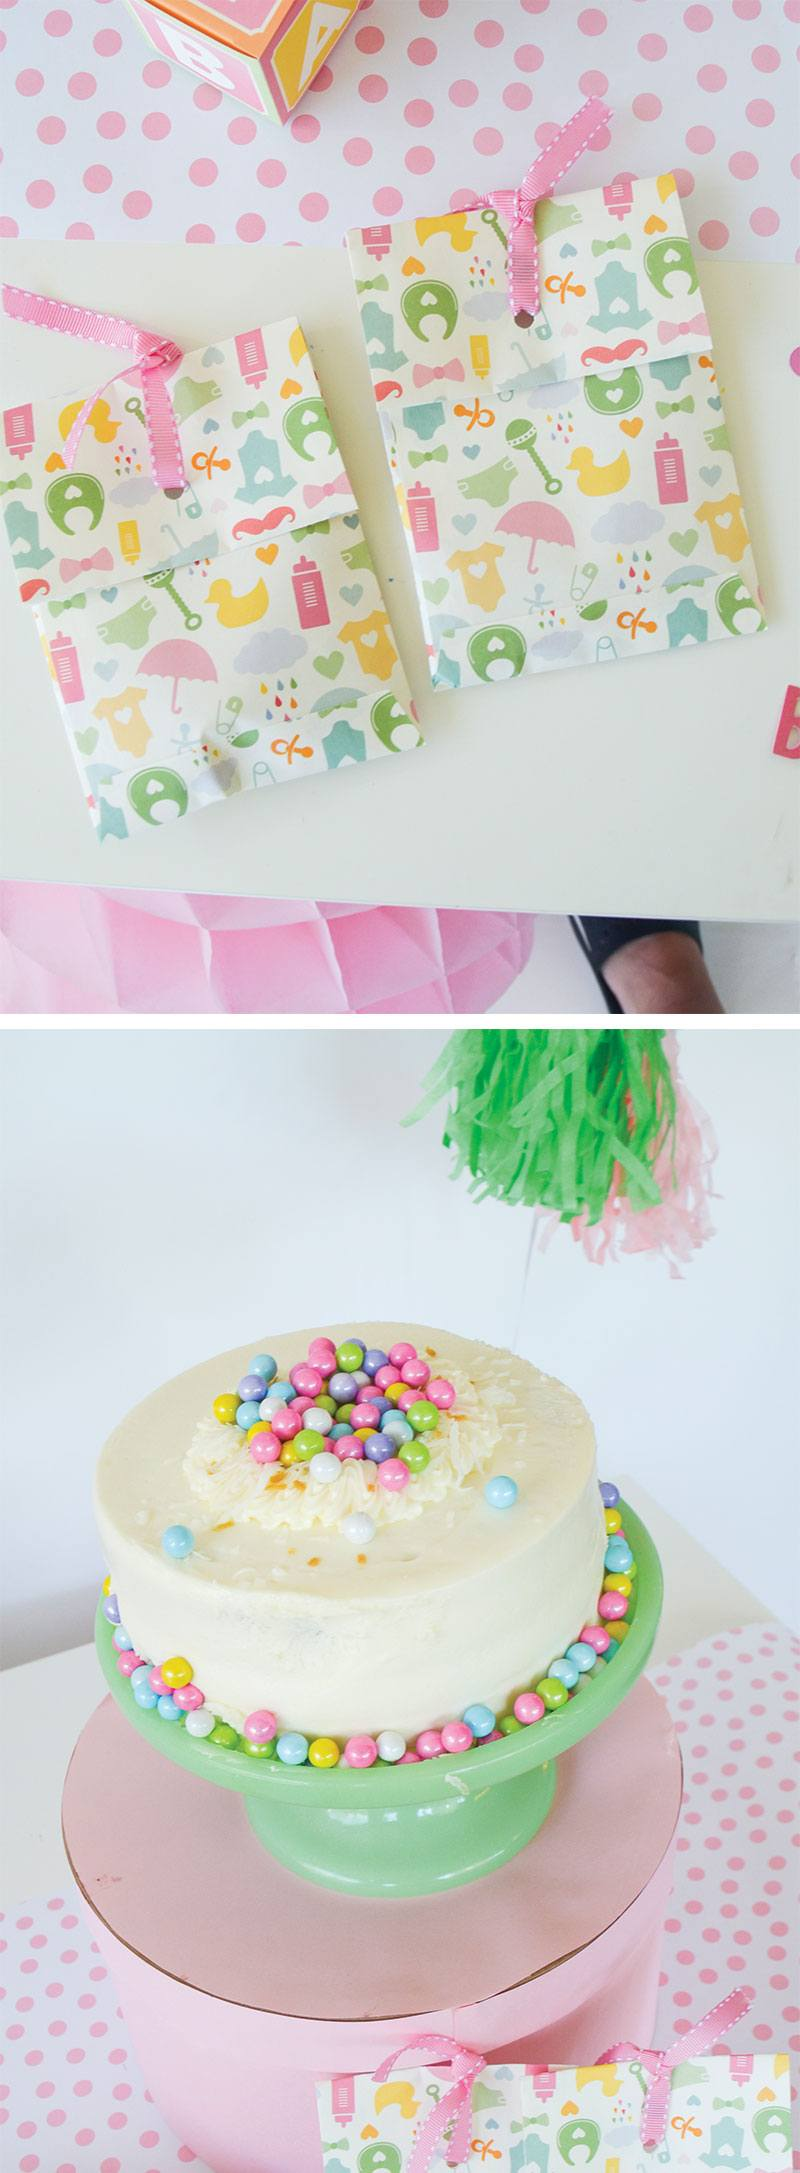 Shower With Love Baby Shower by Lindi Haws of Love The Day